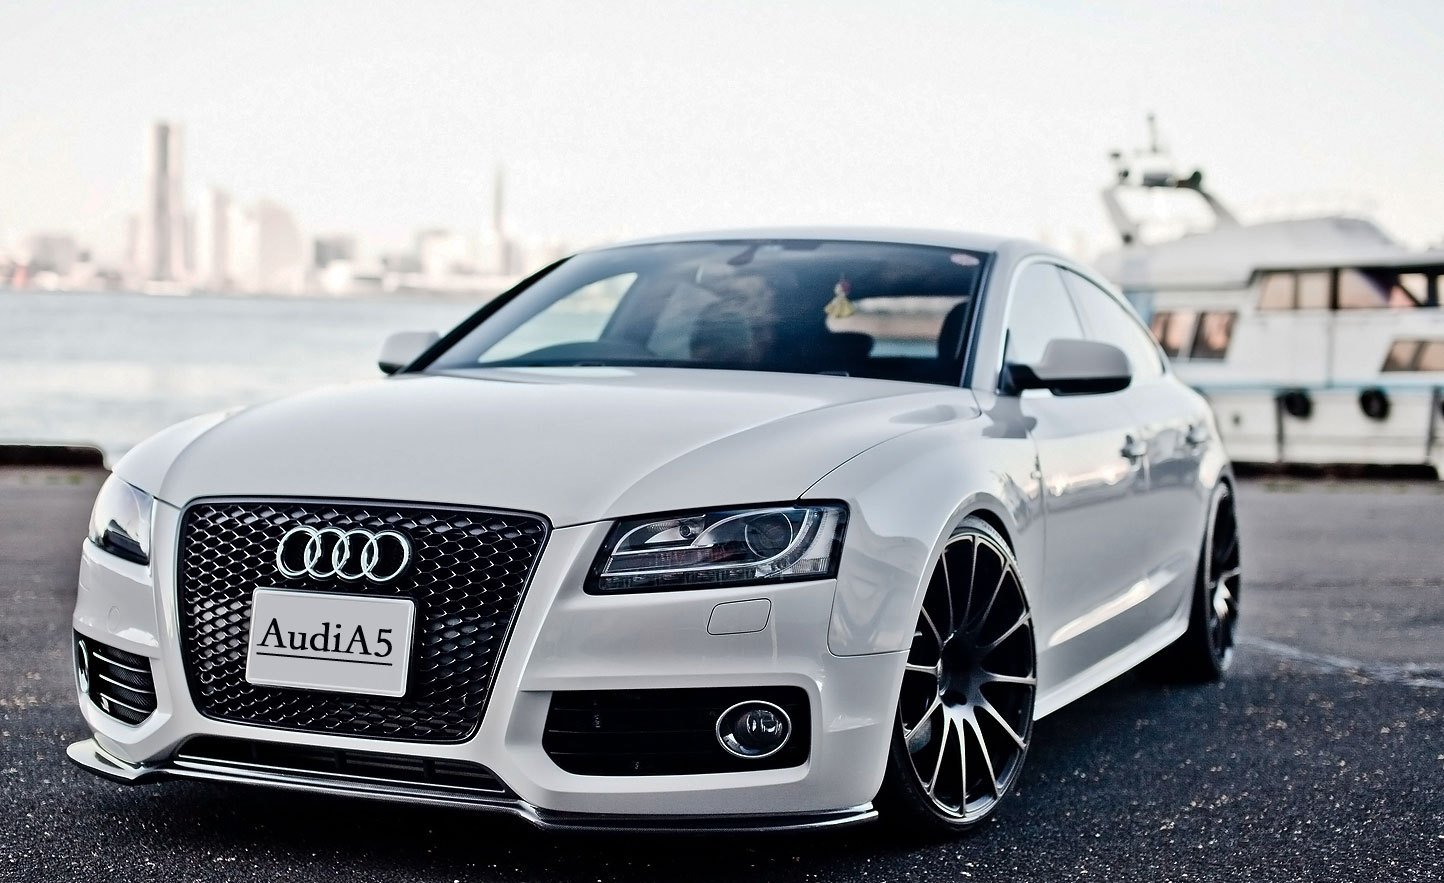 Latest Audi Plans To Launch Its Coupe Car Audi A5 In The End Of 2013 Free Download